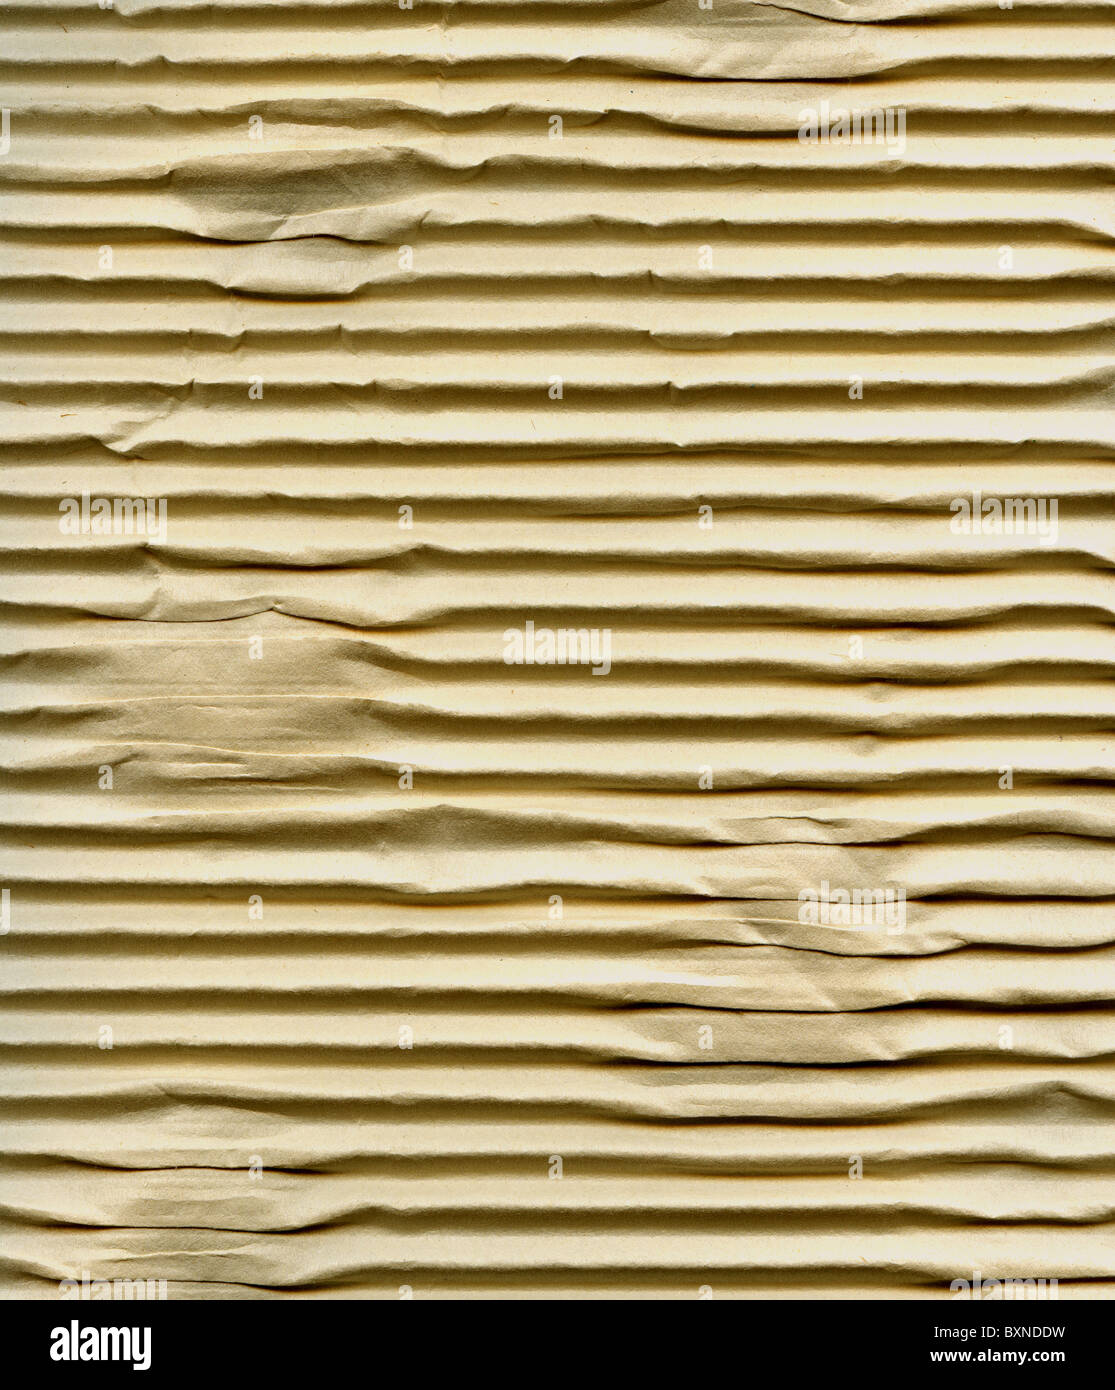 Textured corrugated striped cardboard with natural fiber parts - Stock Image